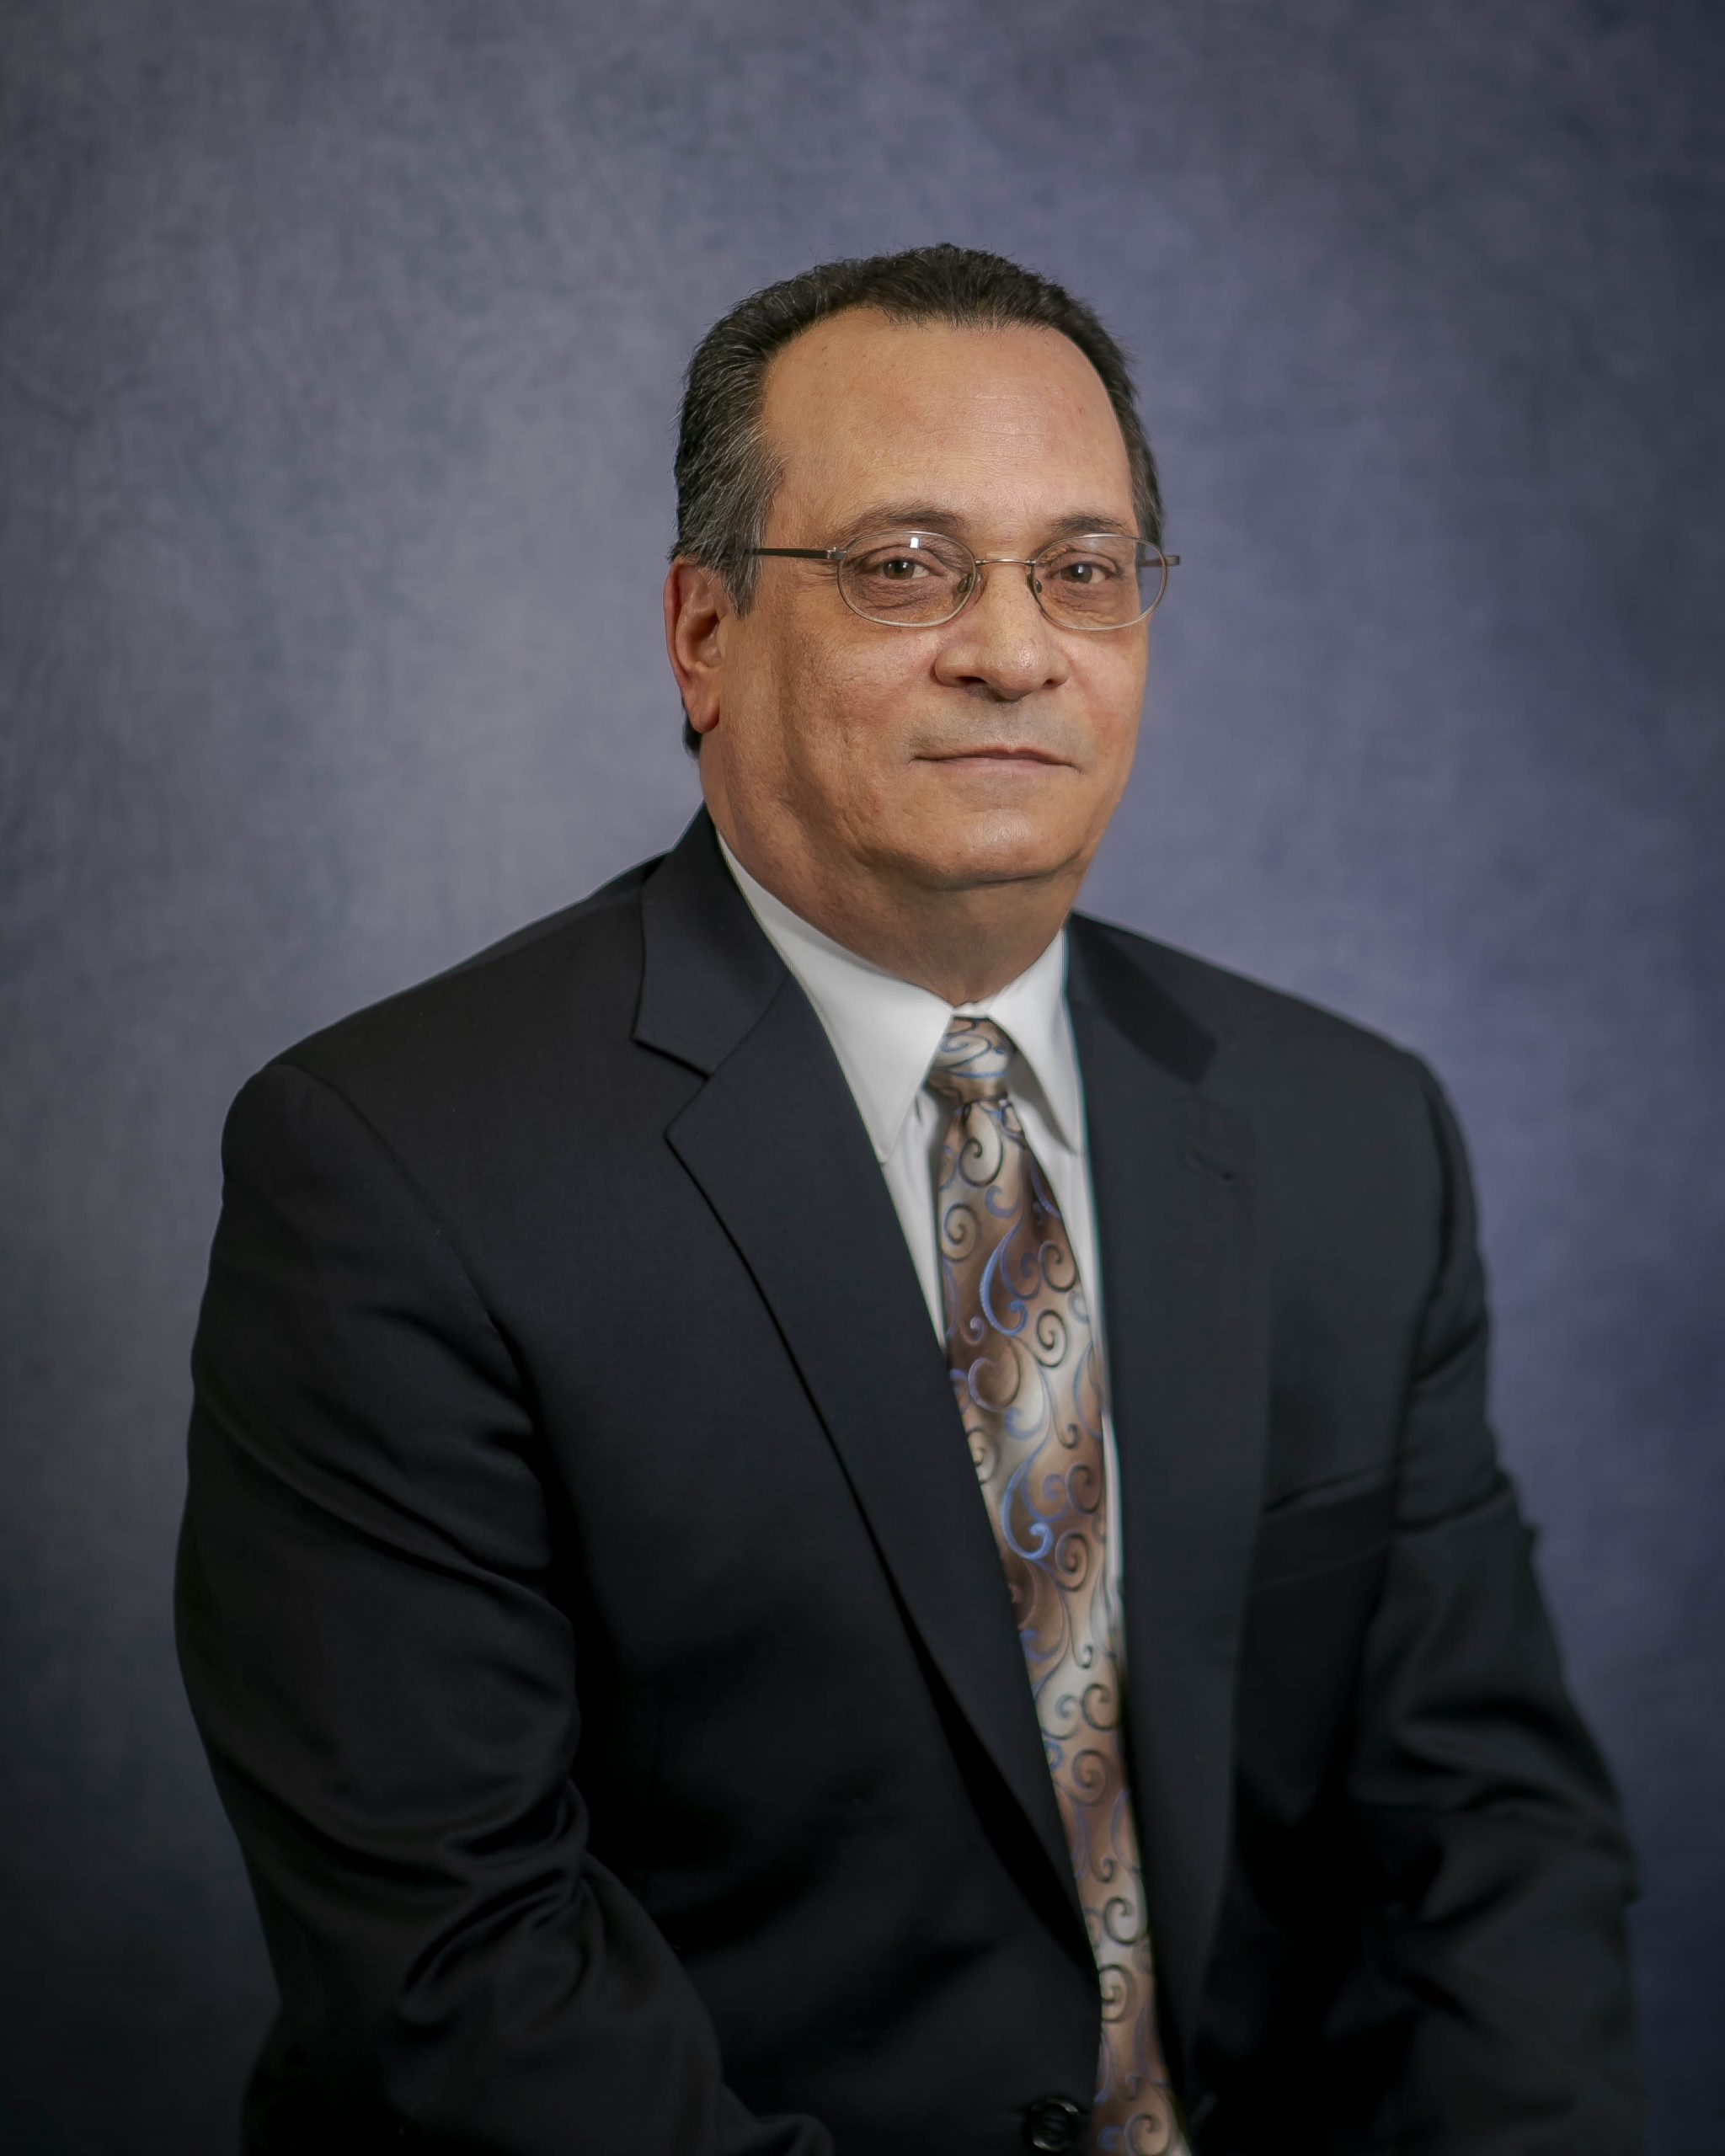 Mark Rinaldi, partner at Singley, Gindele & Rinaldi, a leading law firm in South Jersey